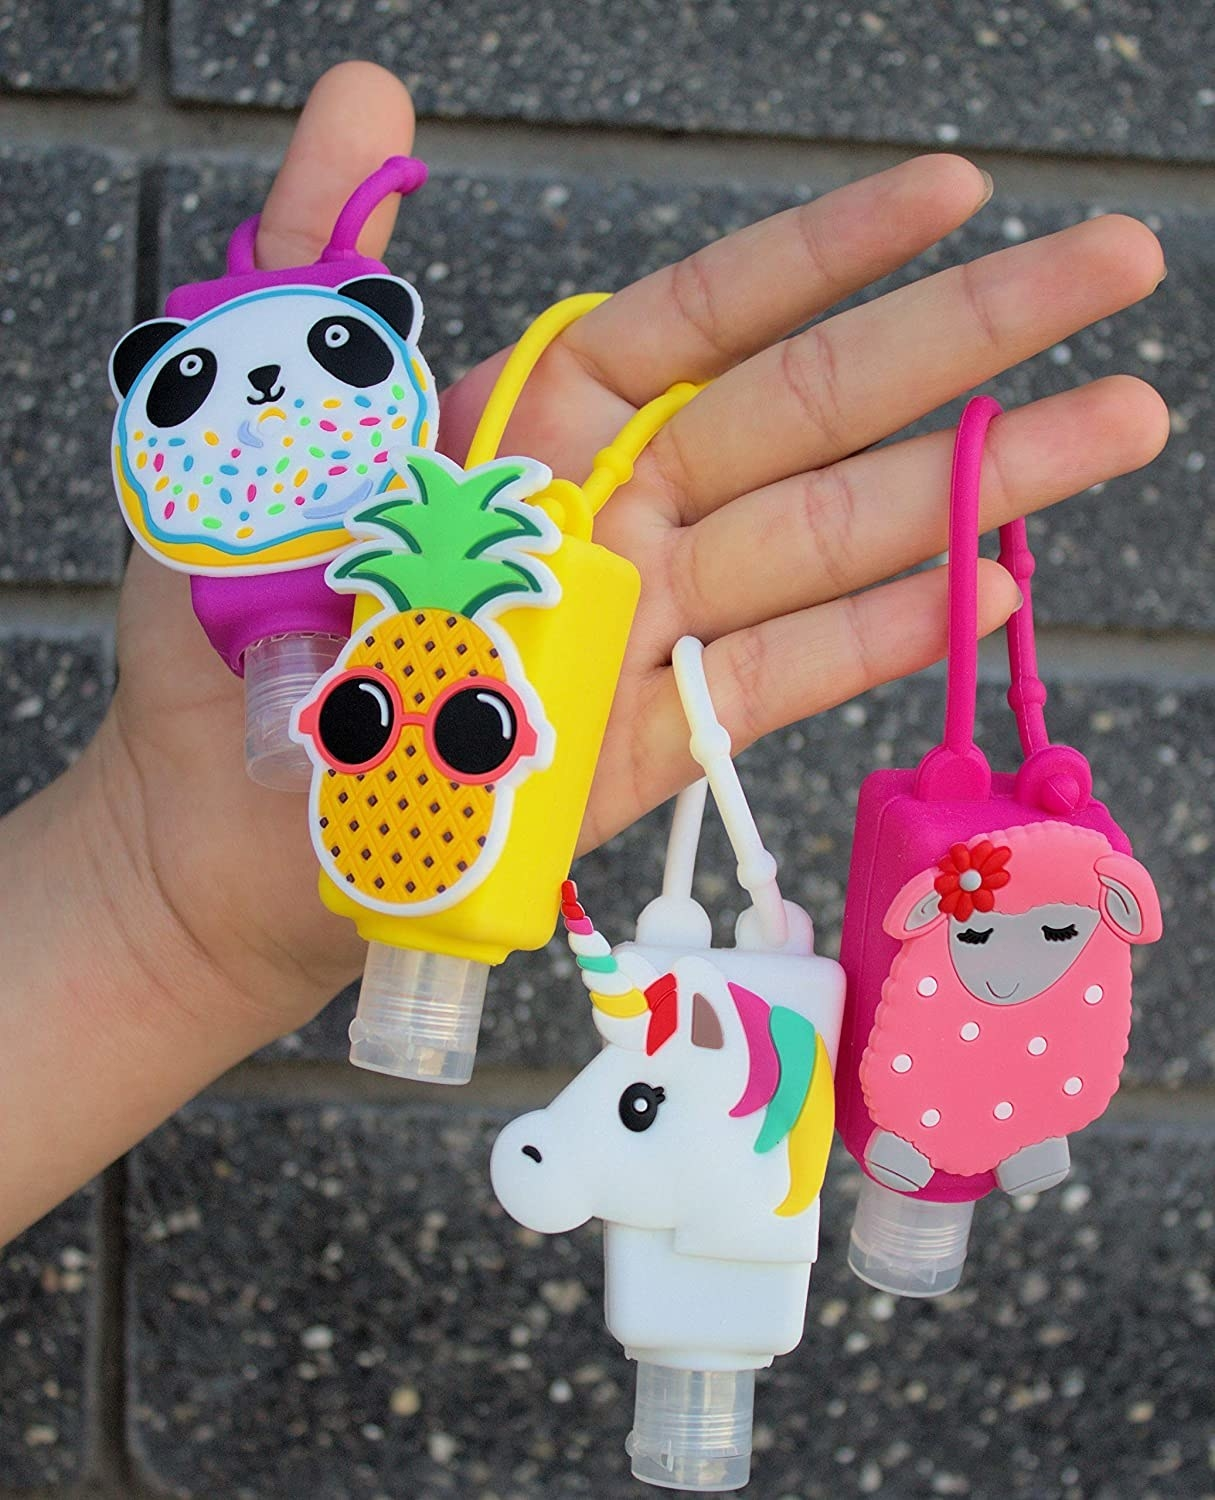 a person holding four cute sanitizer keychain bottles